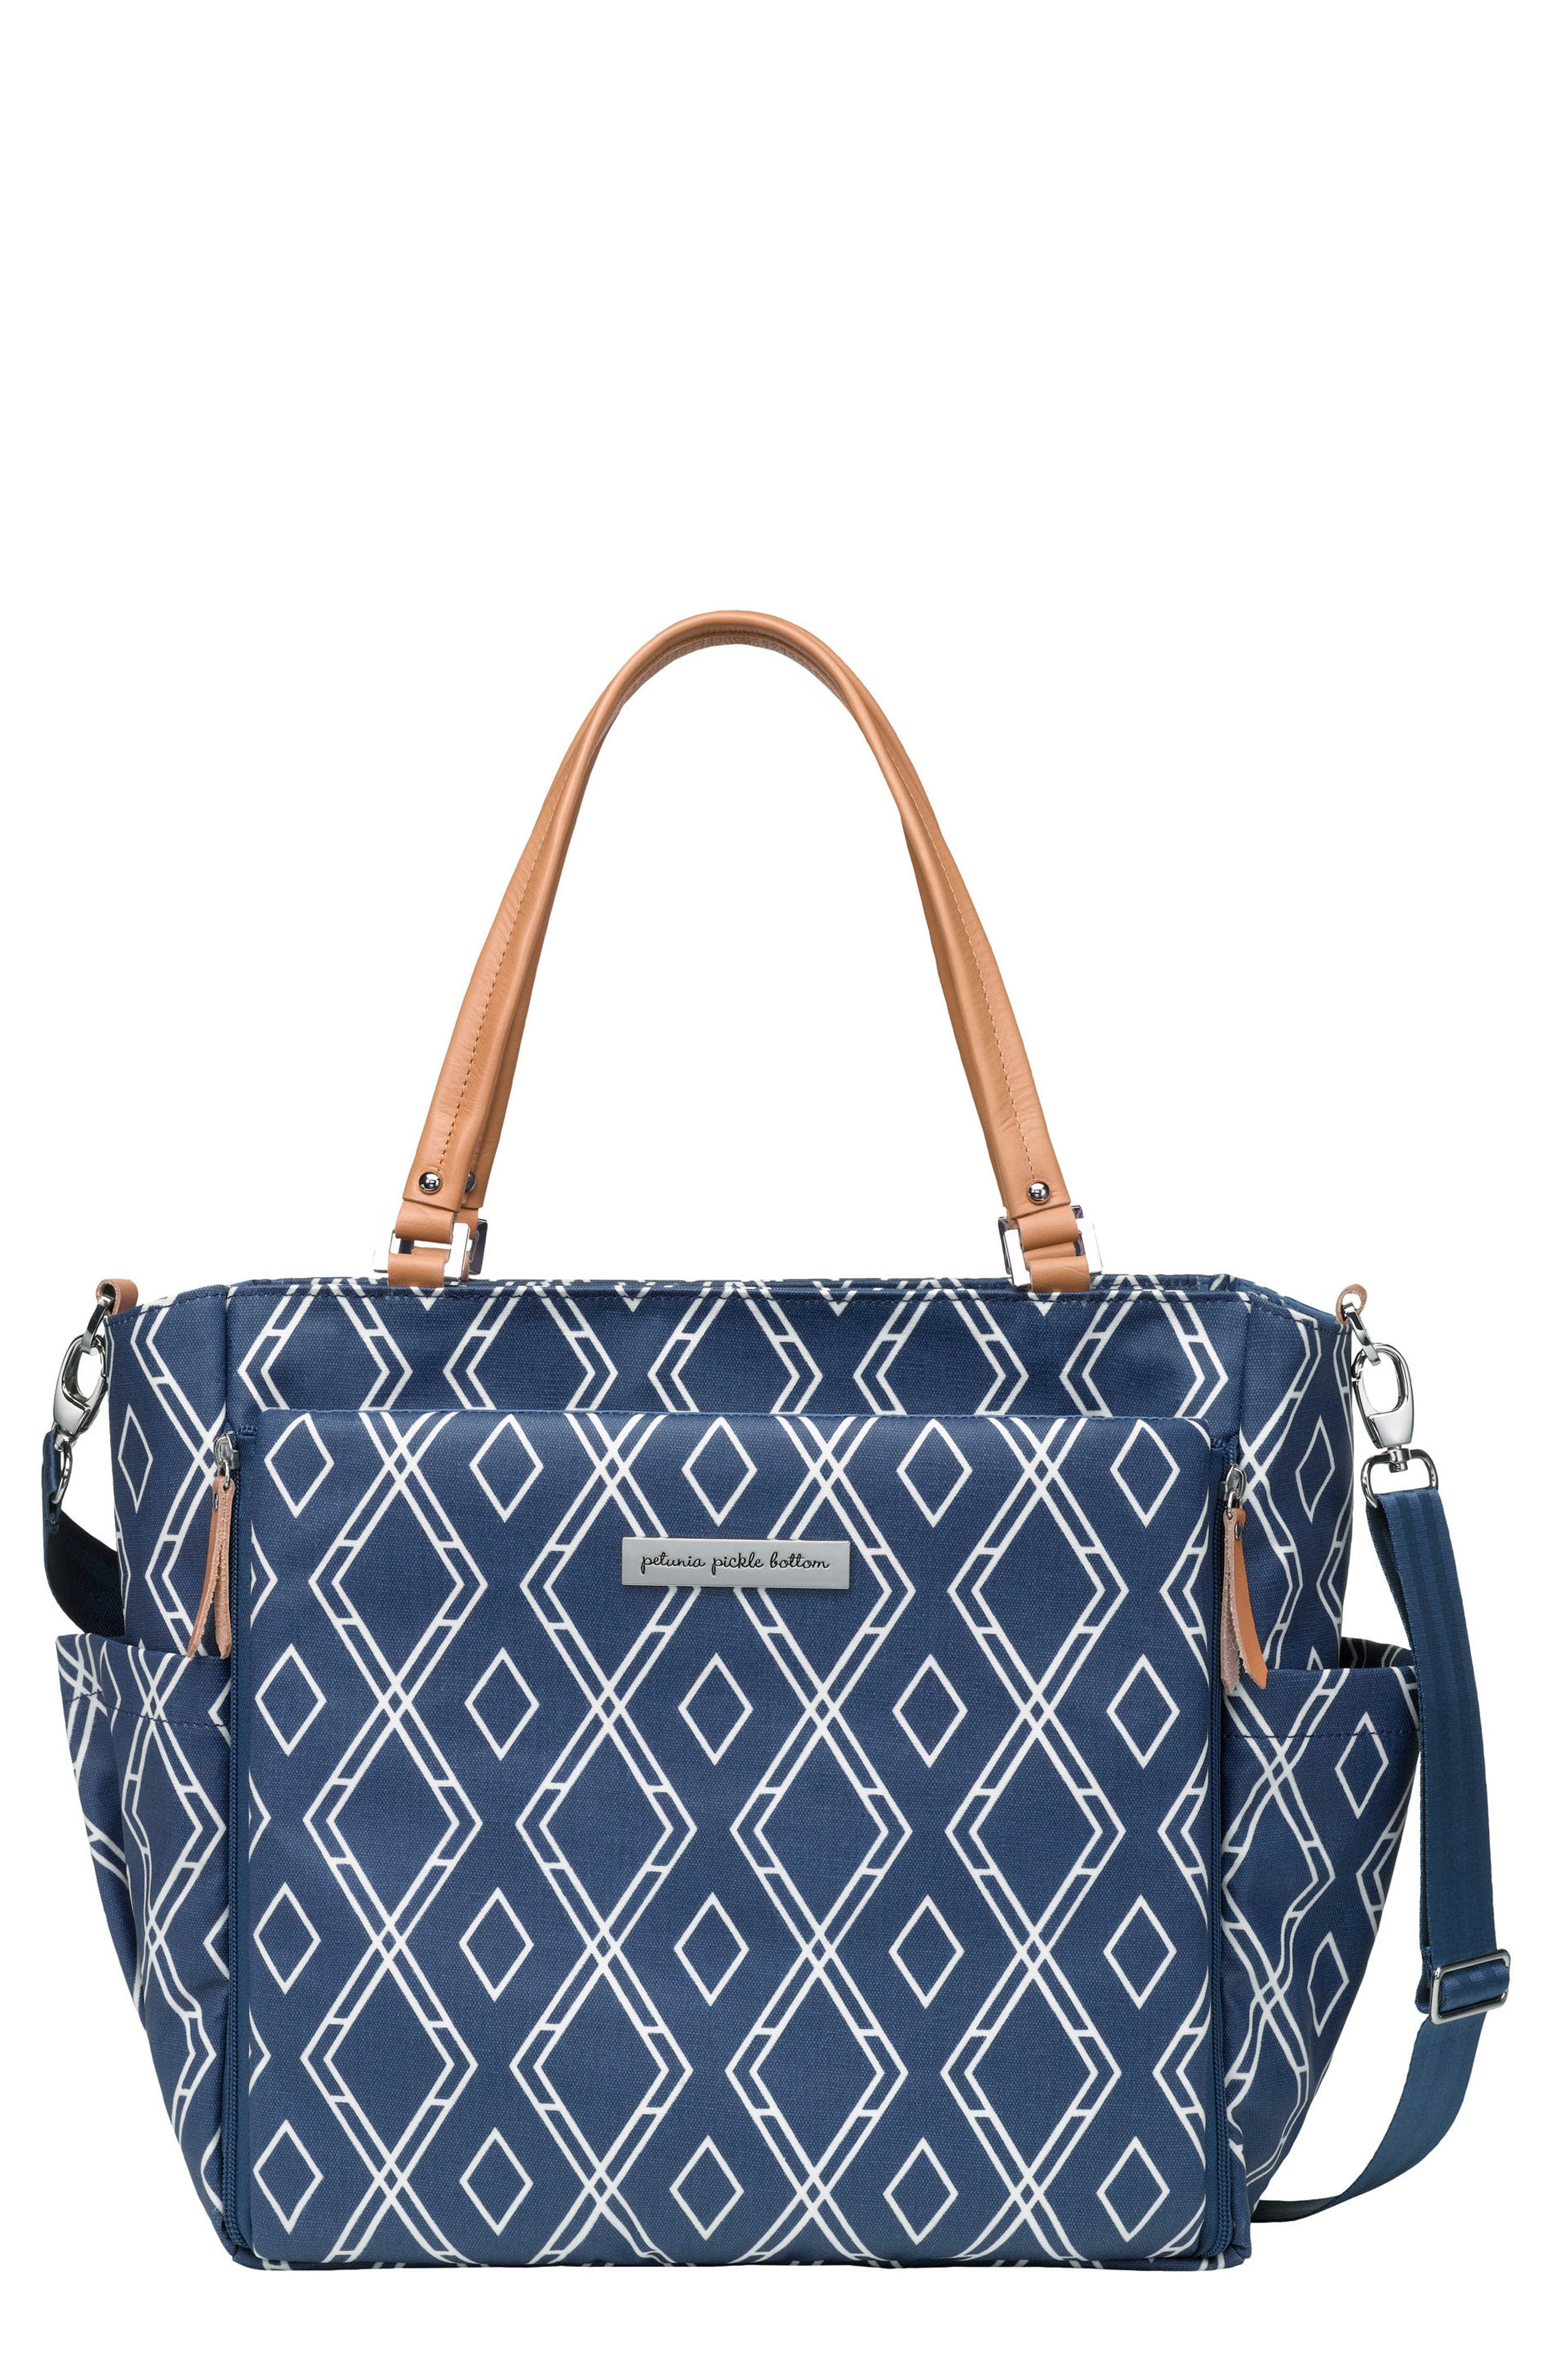 Petunia Pickle Bottom City Carryall Diaper Bag